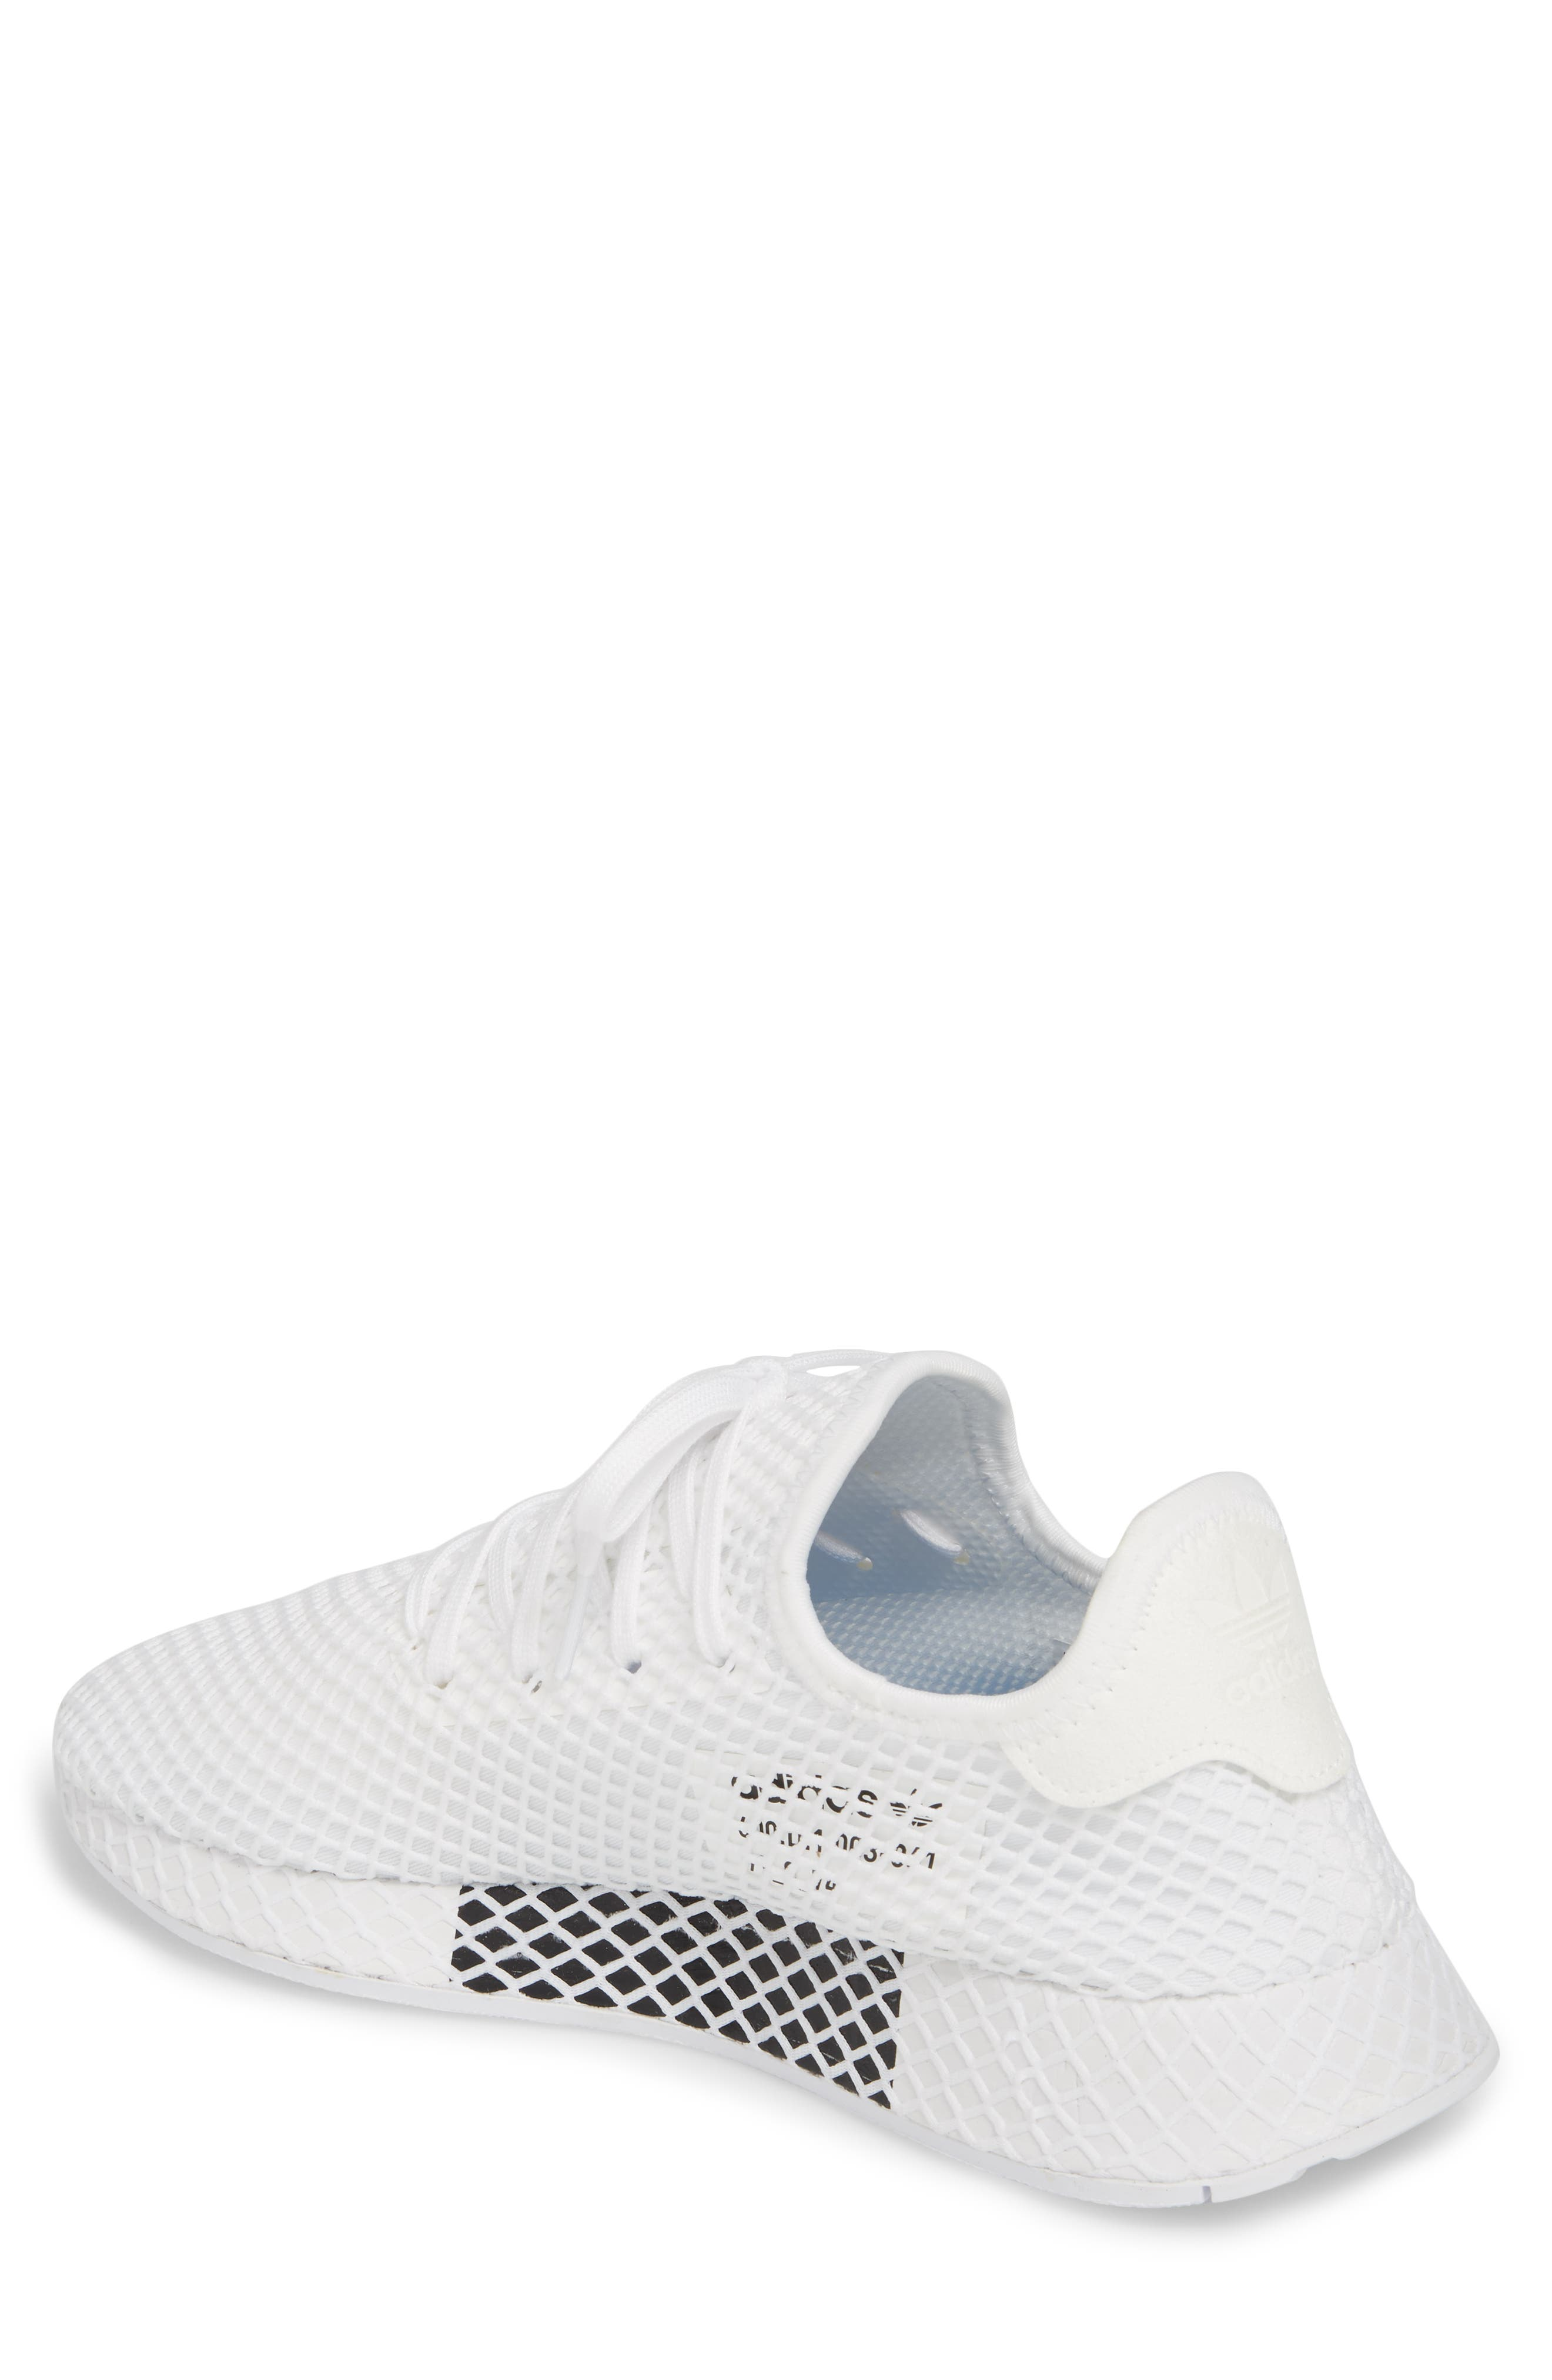 Deerupt Runner Sneaker,                             Alternate thumbnail 2, color,                             100